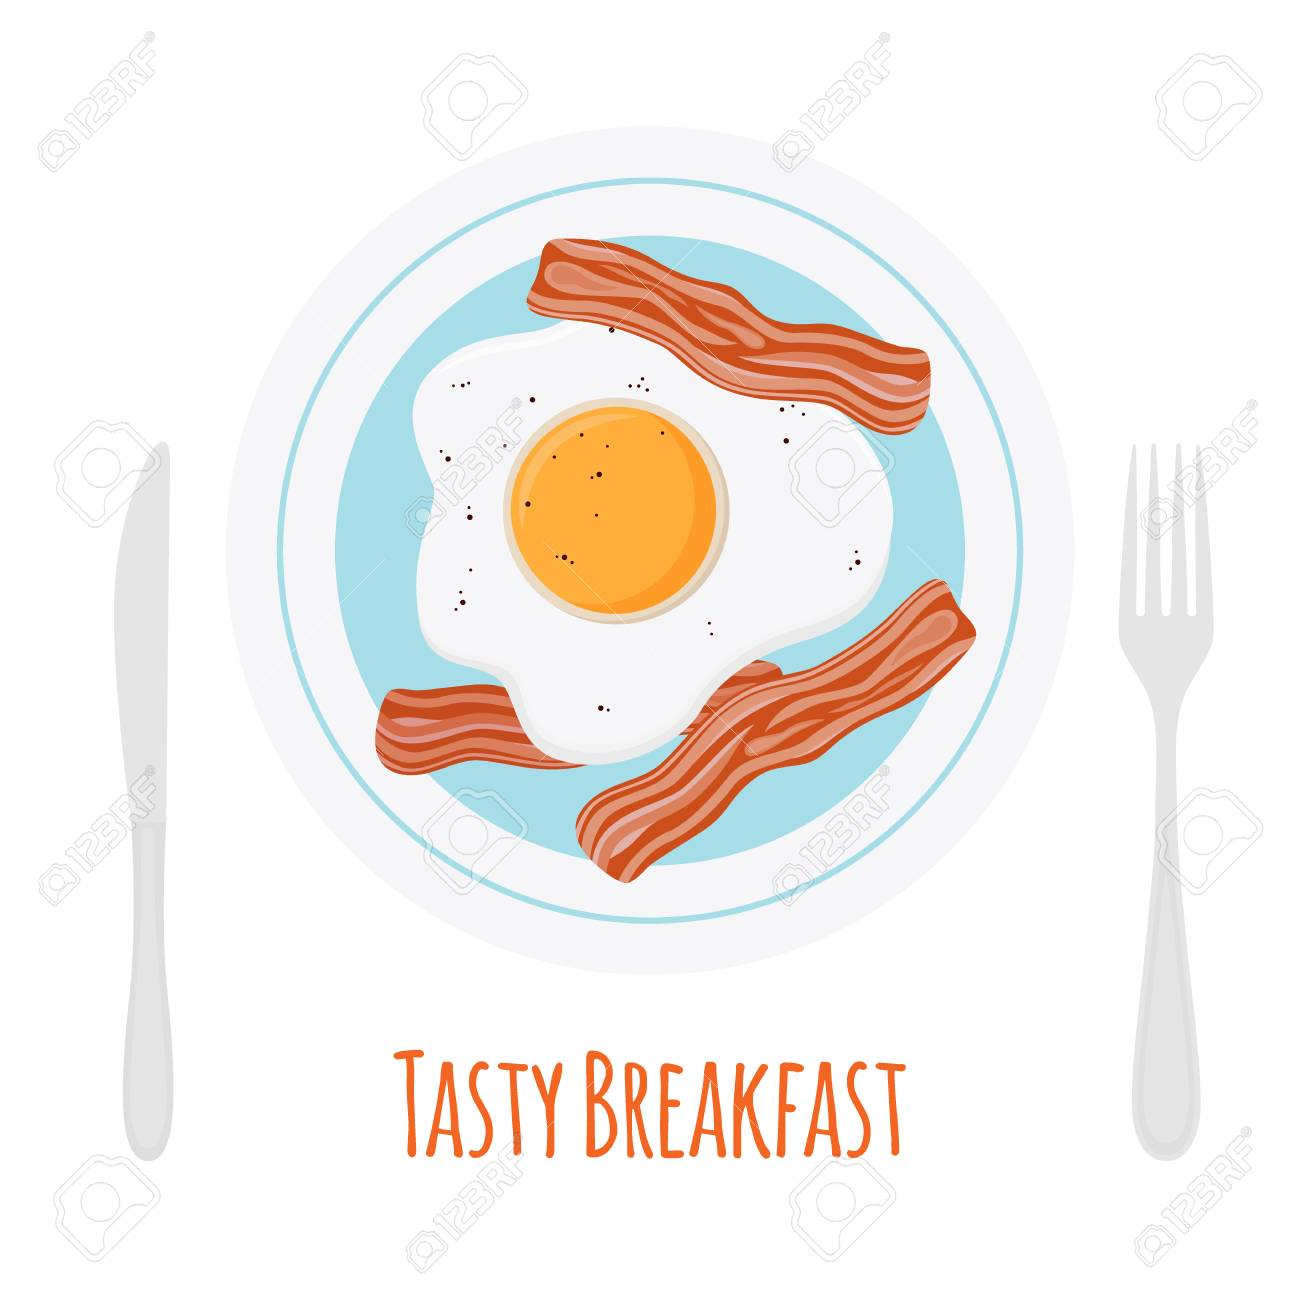 Fried Bacon Scrambled Egg Tasty Breakfast On Plate With Fork Royalty Free Cliparts Vectors And Stock Illustration Image 79228831